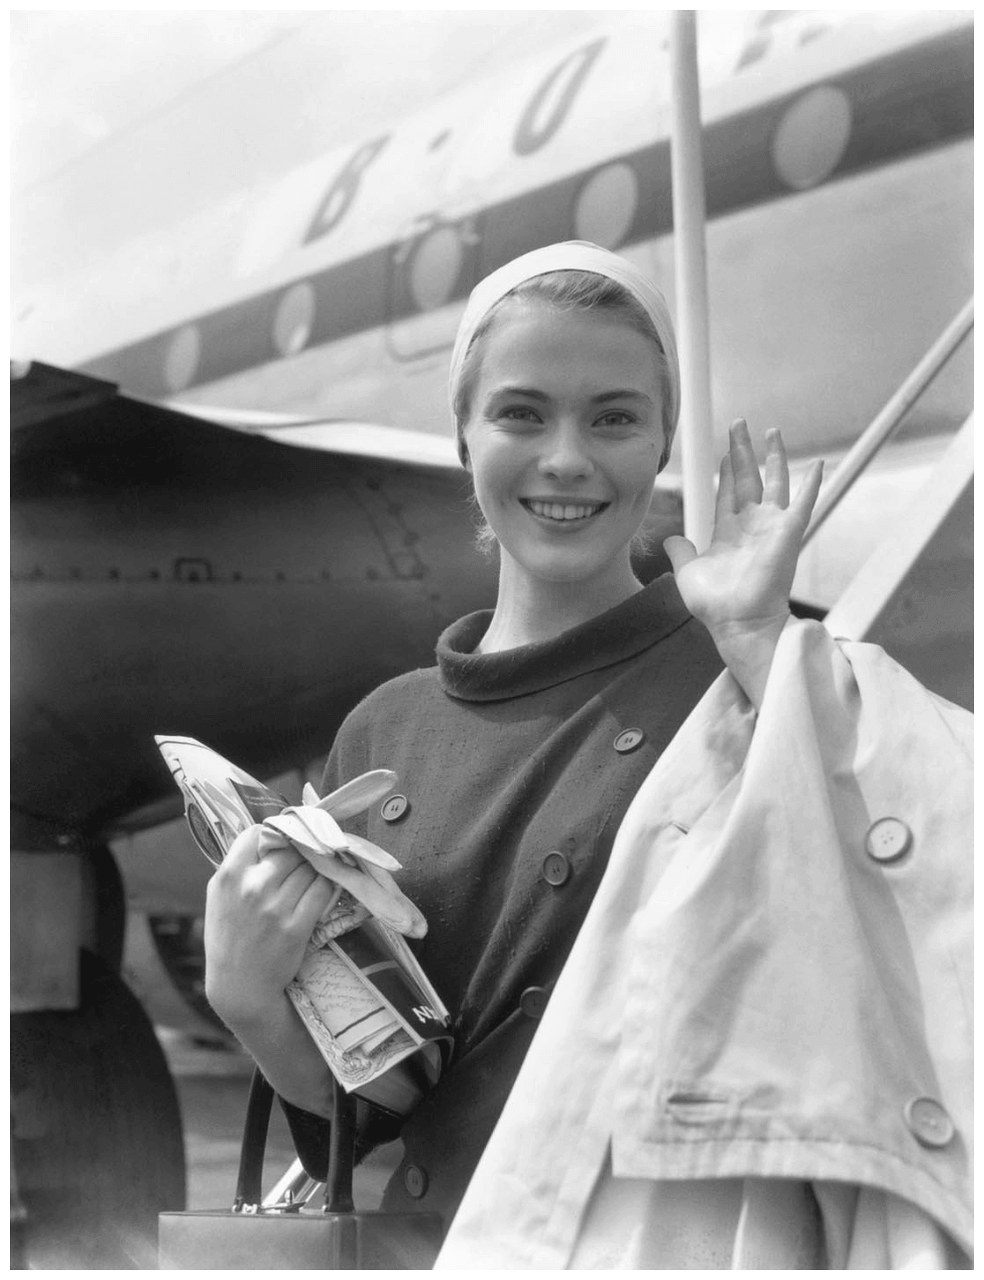 Optimized-Jean-Seberg-arriving-in-London.png